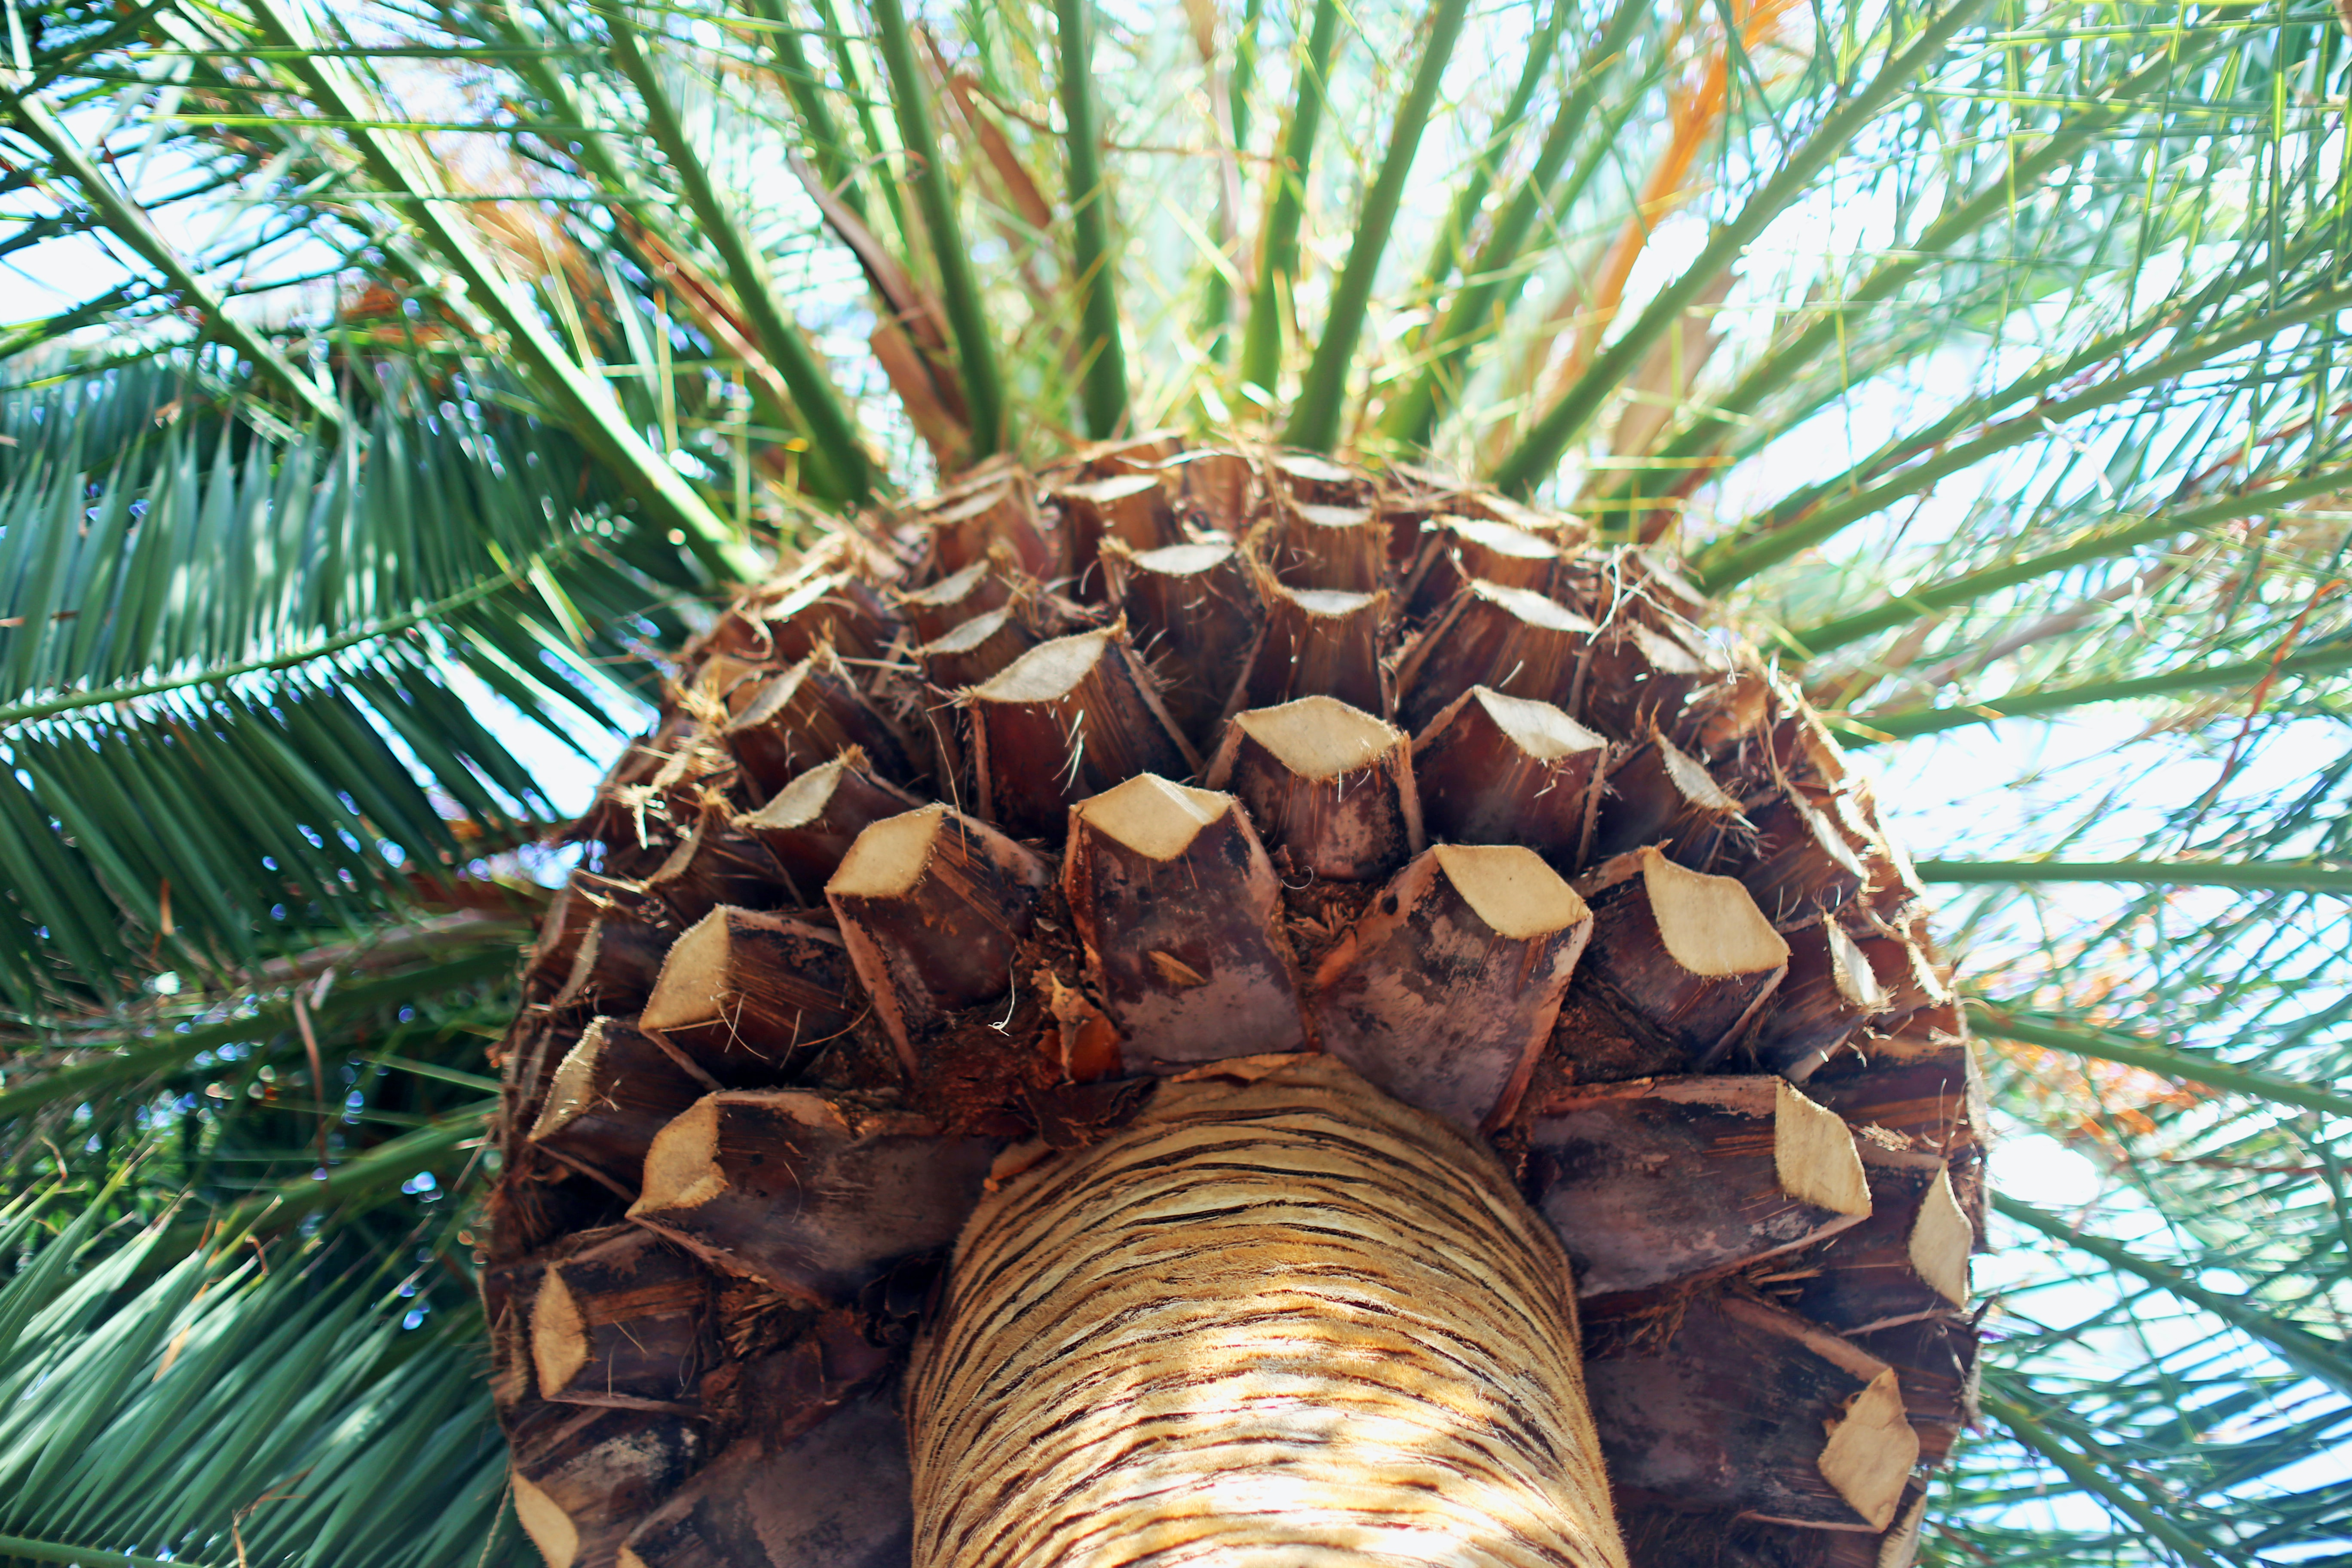 worm's eye view of palm tree